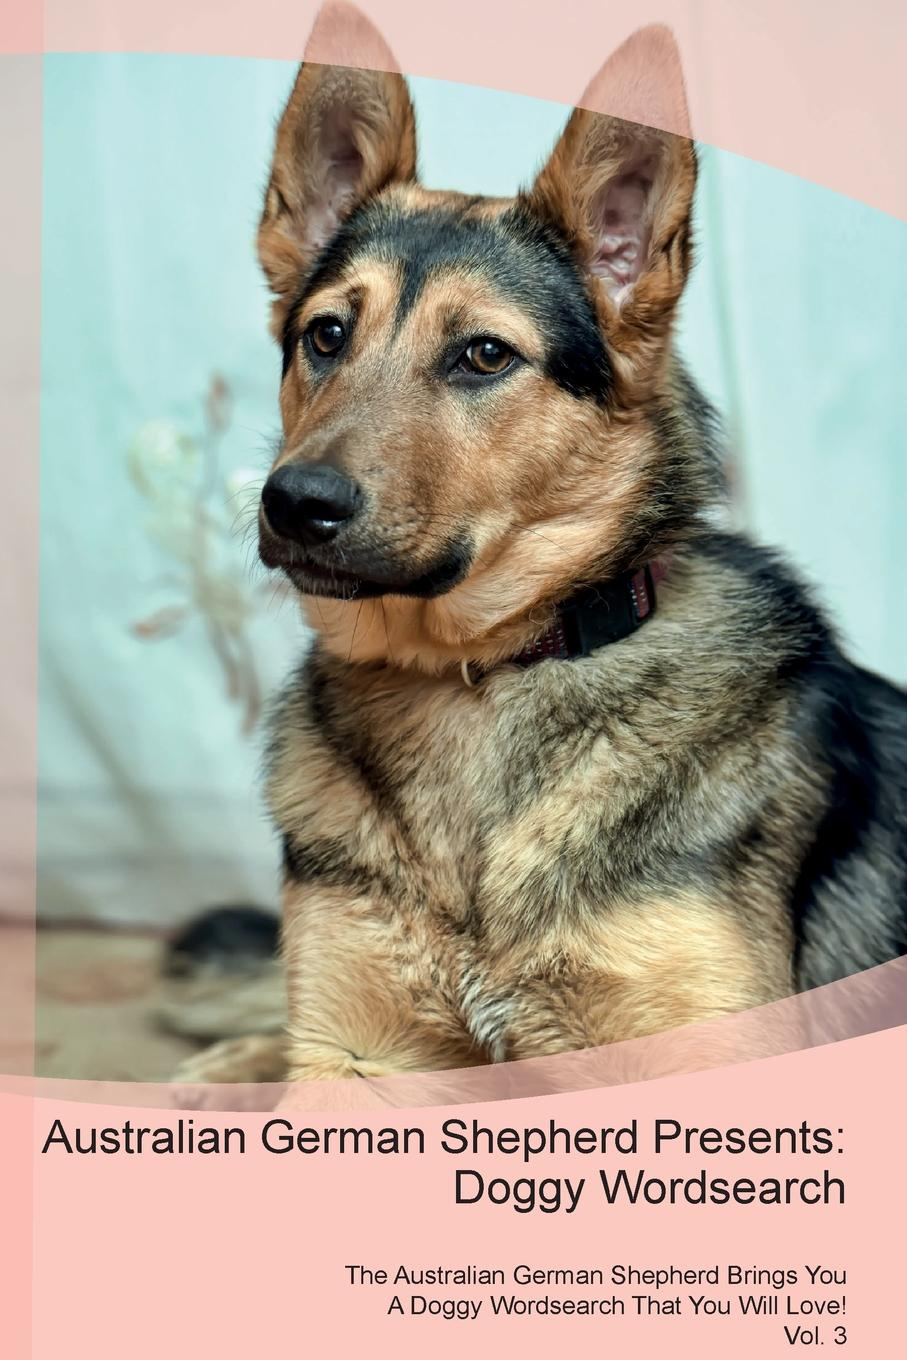 Doggy Puzzles Australian German Shepherd Presents. Wordsearch The Brings You A That Will Love! Vol. 3